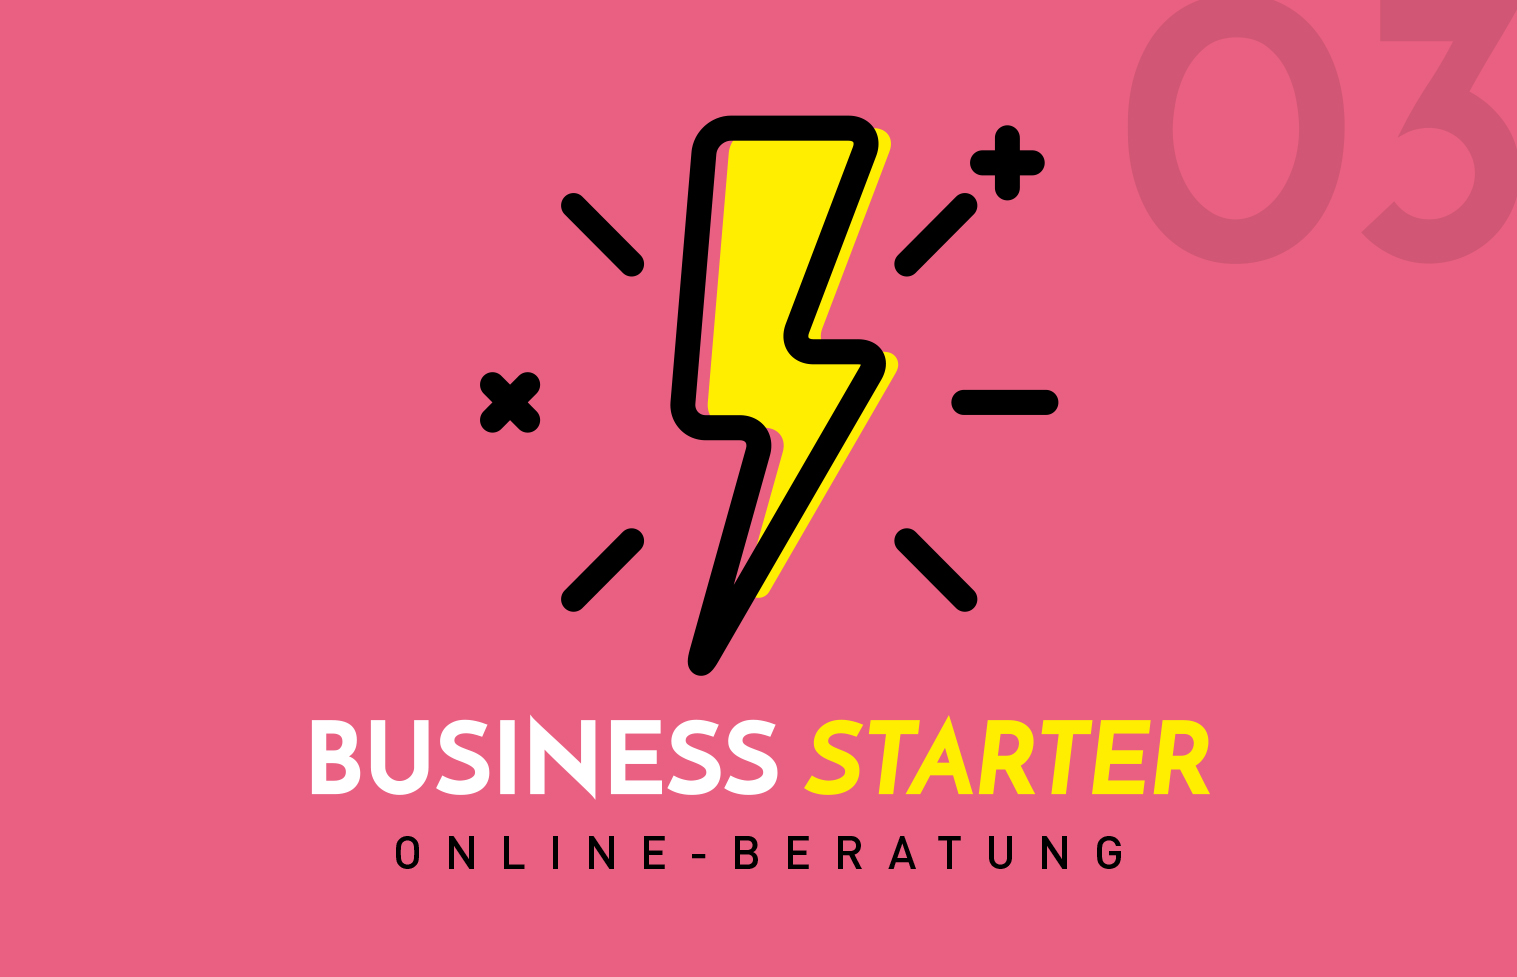 ElisaZunder, Marketing Agentur, Social Media, Lüdenscheid, Sauerland, Nordrhein-Westfalen, Deutschland, Betreuung, Beratung, Facebook-Check-Up, Werbeagentur, Business Coach, Corporate Behaviore